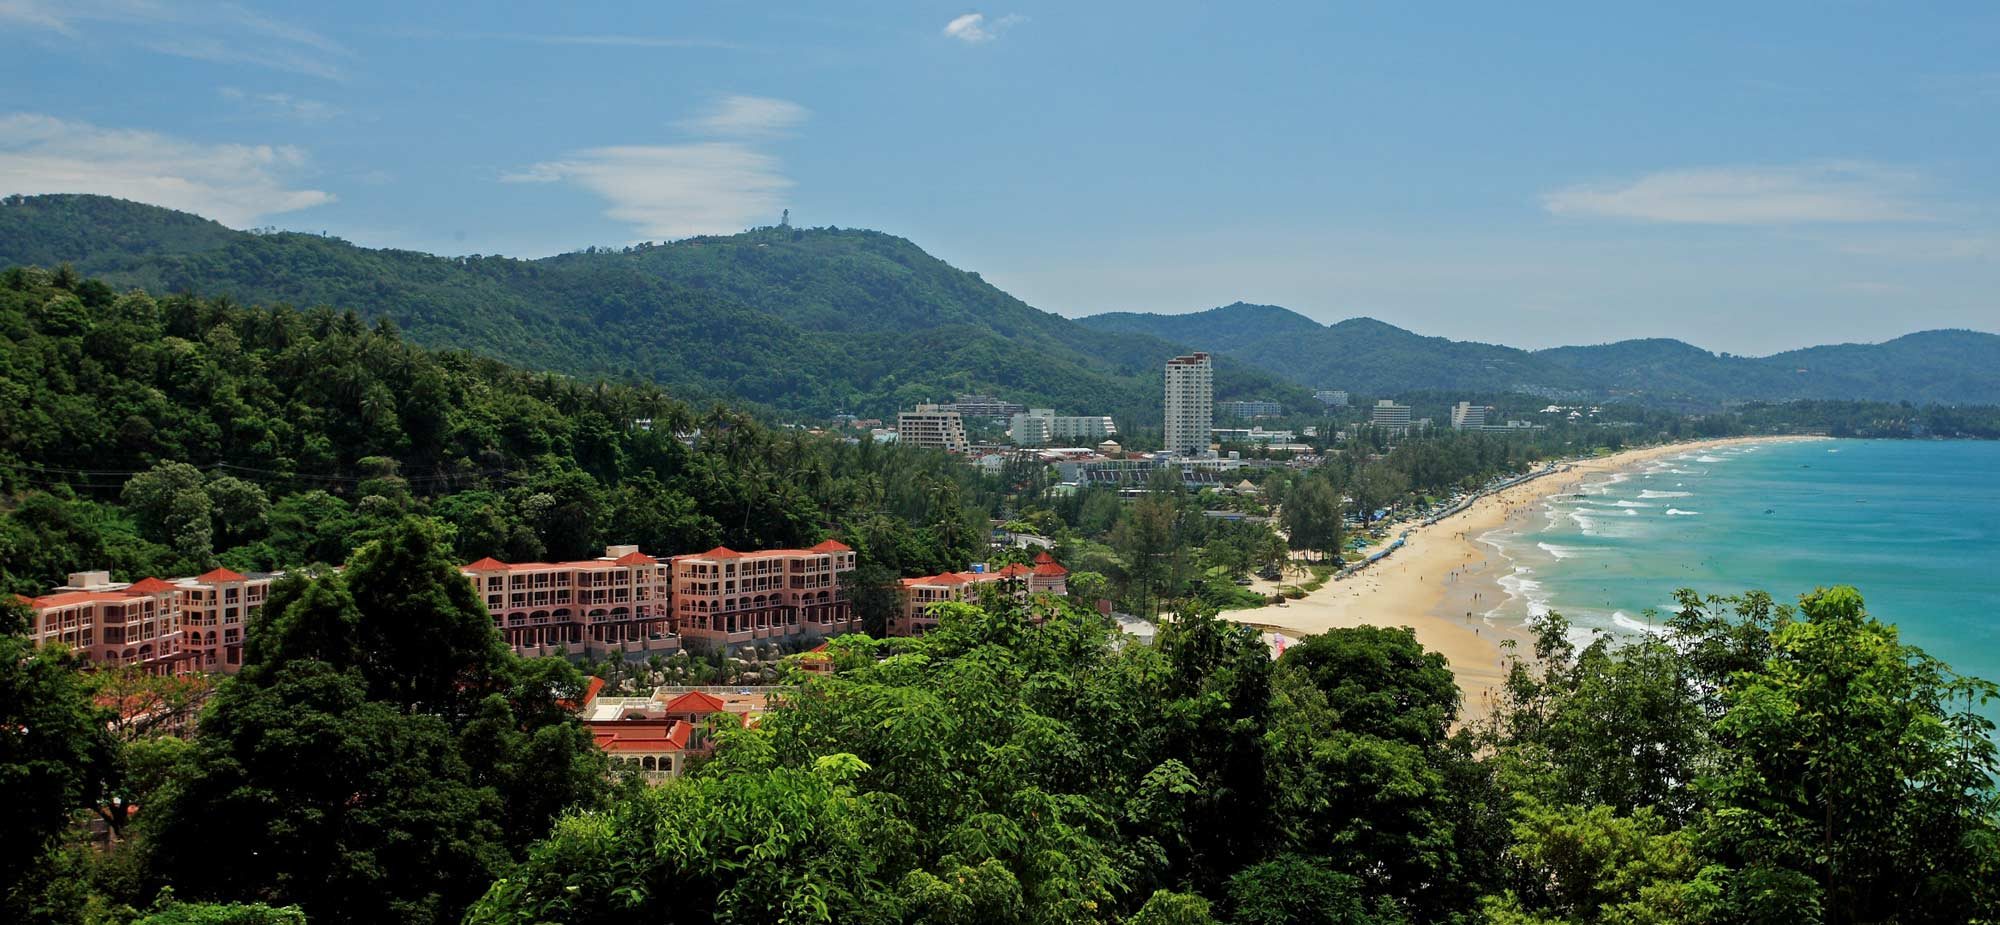 phuket beach hotel Le meridien phuket beach resort straddles beautiful relax bay - an exclusive  beach just north of karon.